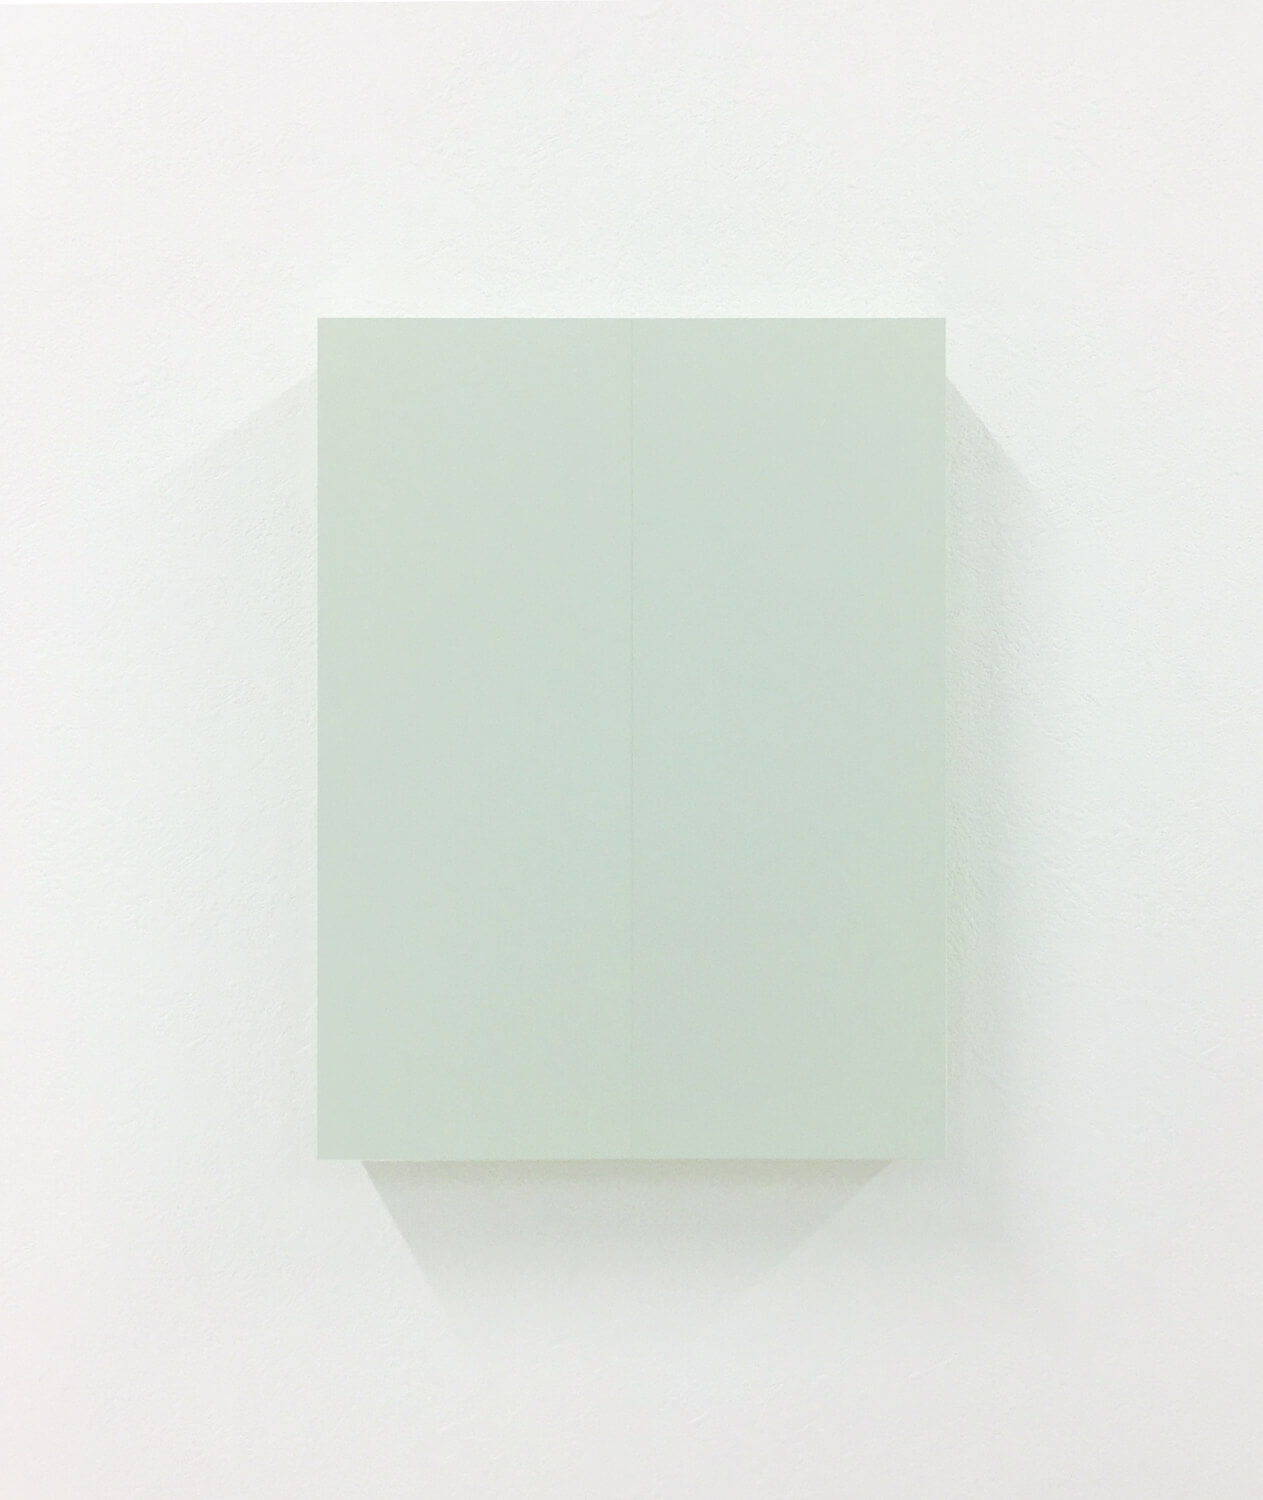 half note_light gray, silkscreen on perspex, 24 x 18 x 4 cm, 2018